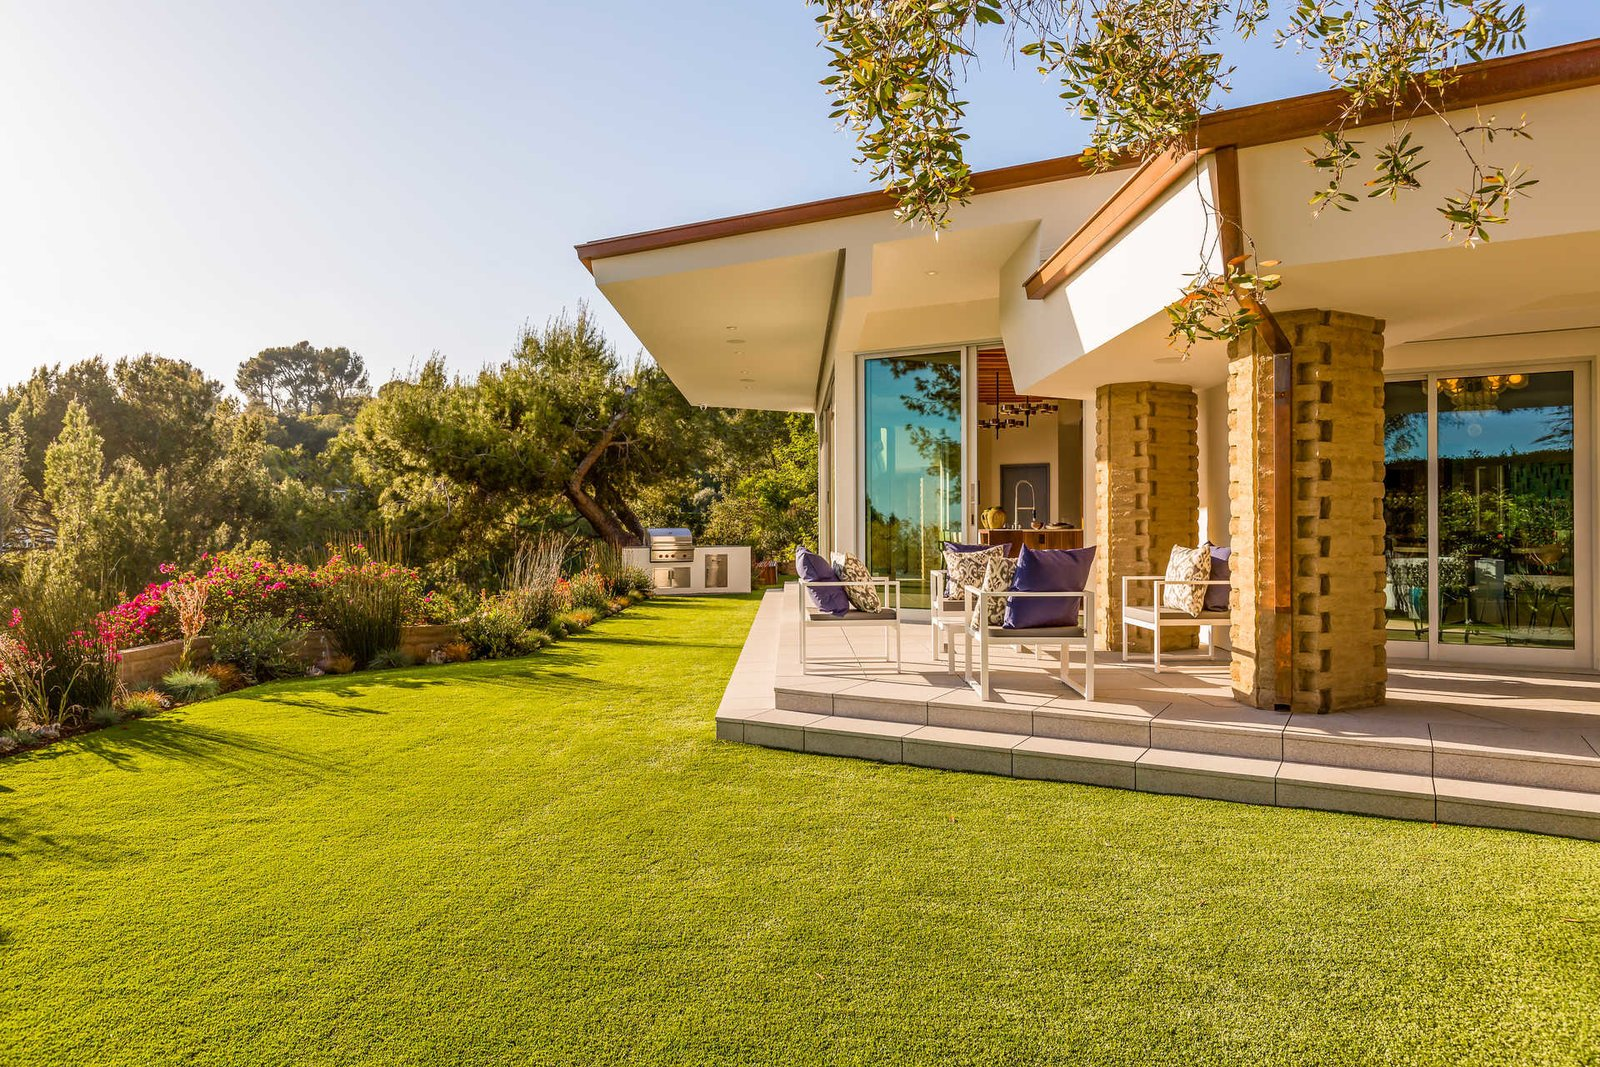 Set on nearly 1.5 acres in lower Bel Air, the home features breathtaking views of the Pacific Ocean and the Getty Museum.